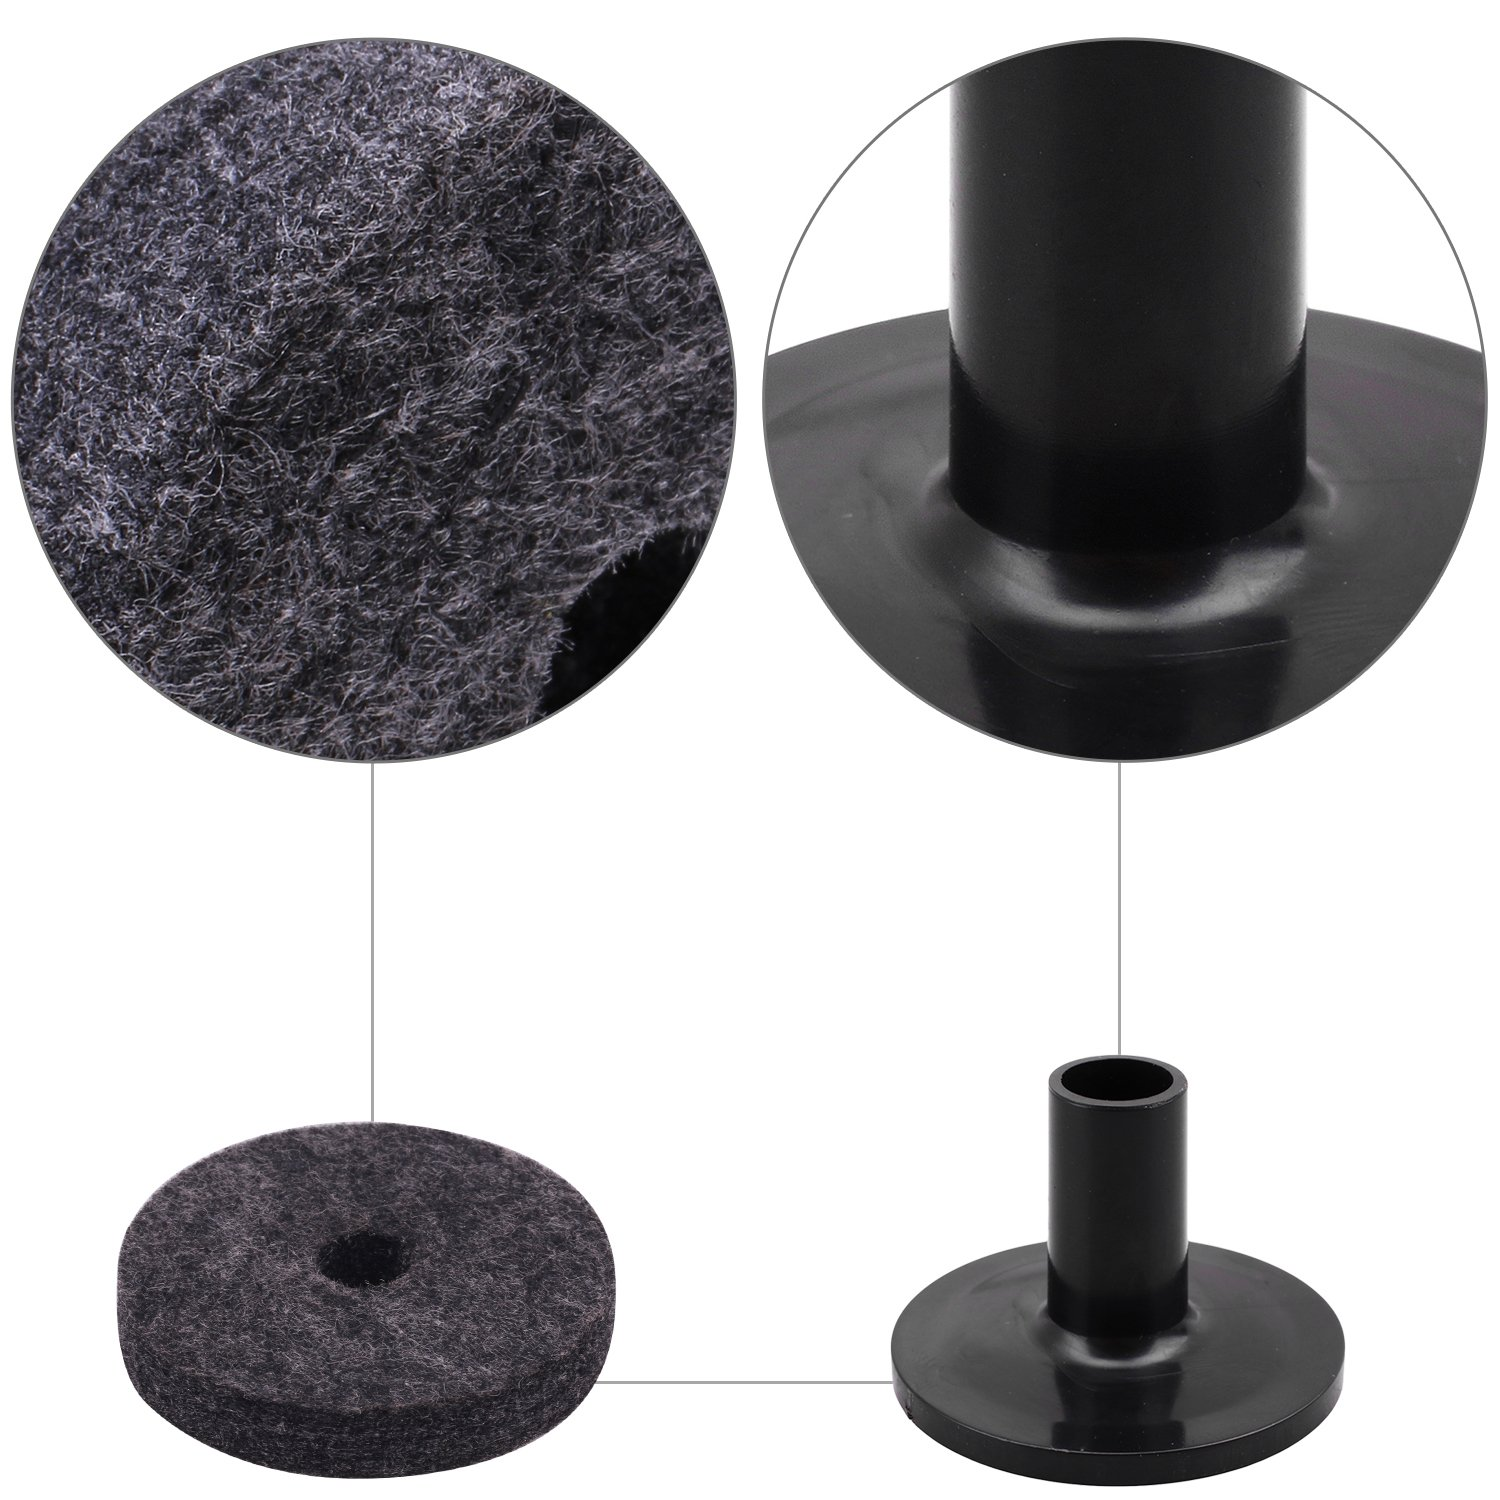 8PCS Cymbal Stand Felt 50mm Washer 2PCS Cymbal SleevesReplacement for Shelf Drum Kit